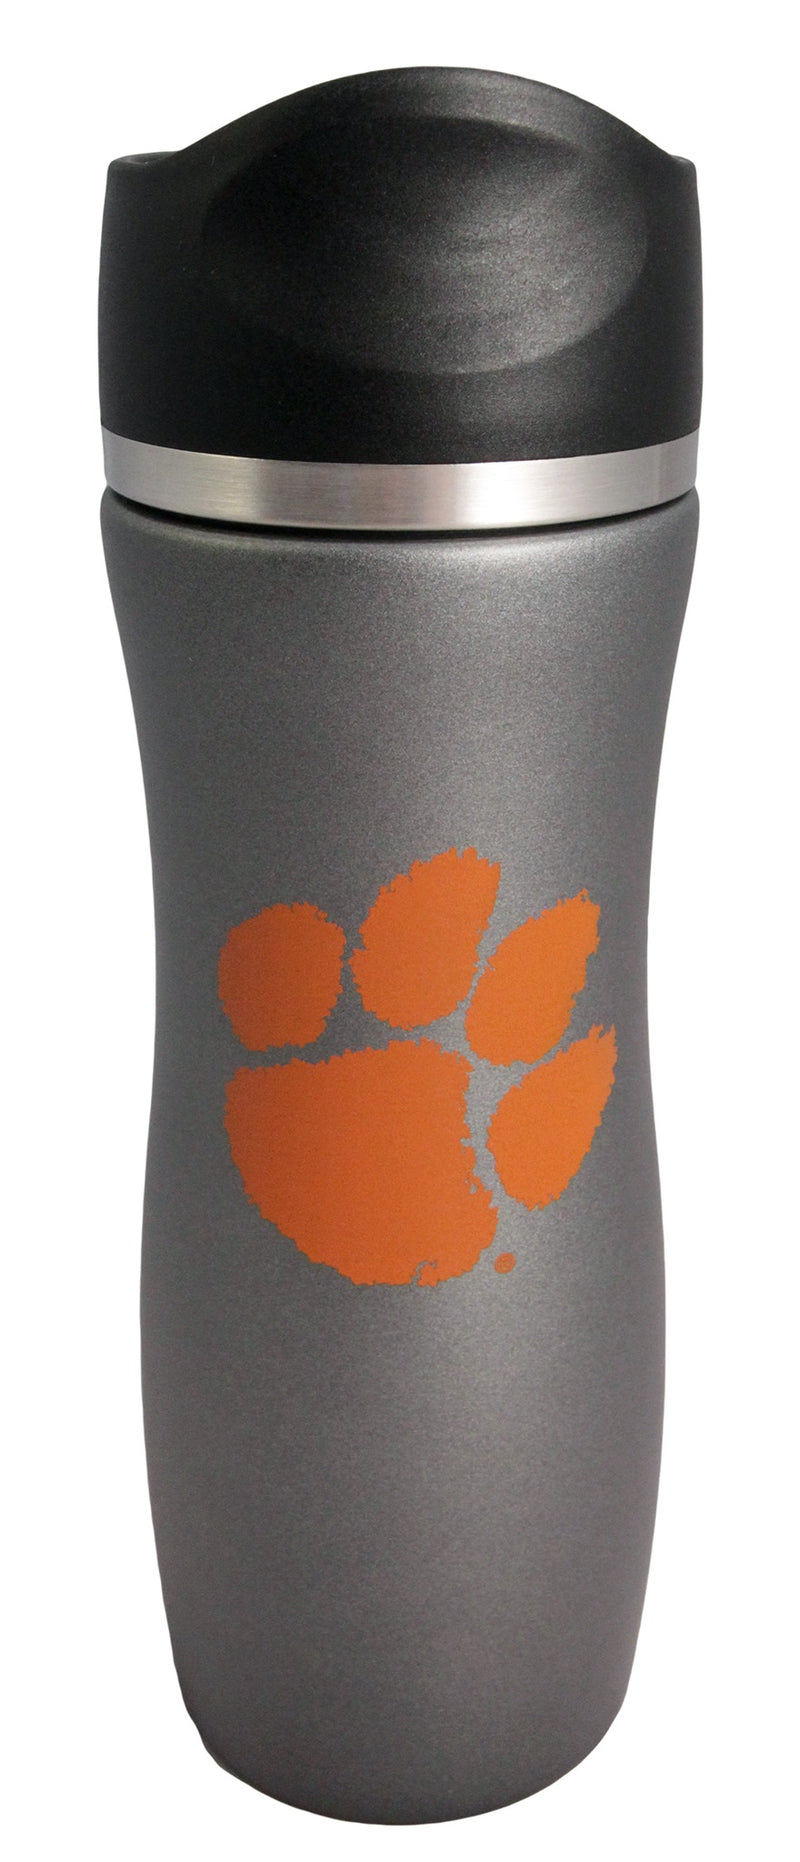 Clemson University Vacuum Insulated Tumbler